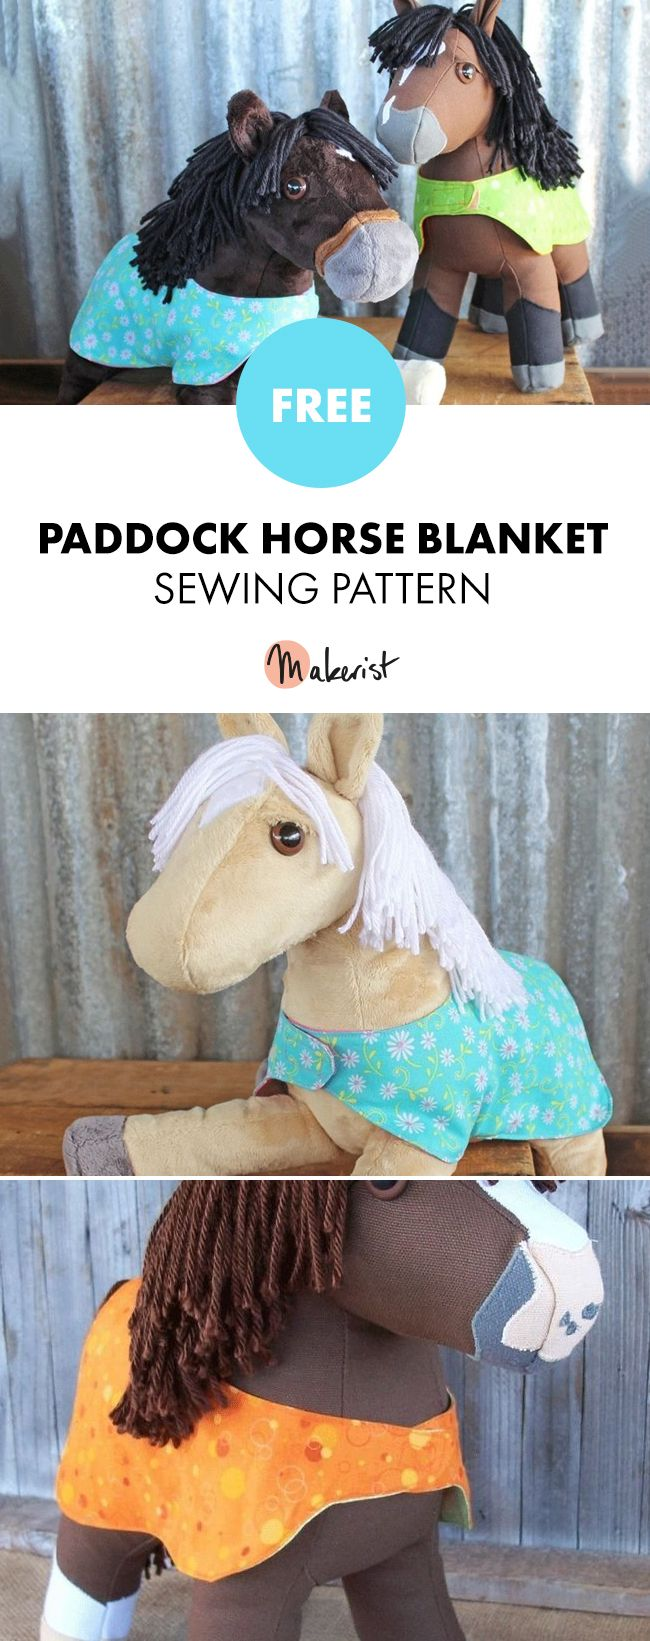 65 besten Sewing Pattern Ideas: Stuffed Animals Toys Bilder auf ...